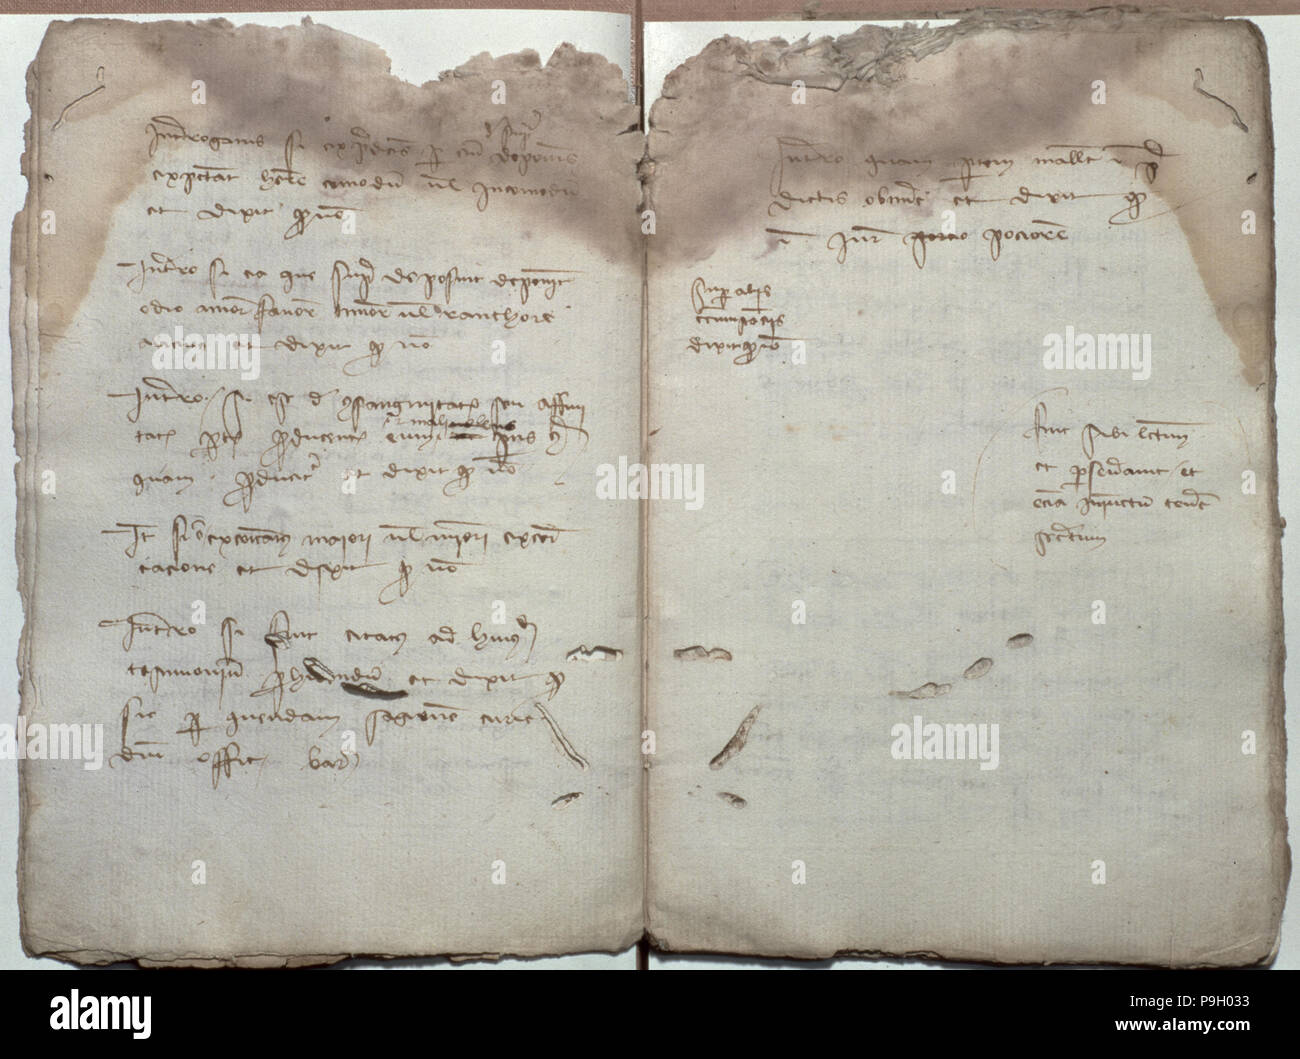 Document of acceptance of bills of exchange among merchants from Barcelona and Florence (1411). - Stock Image